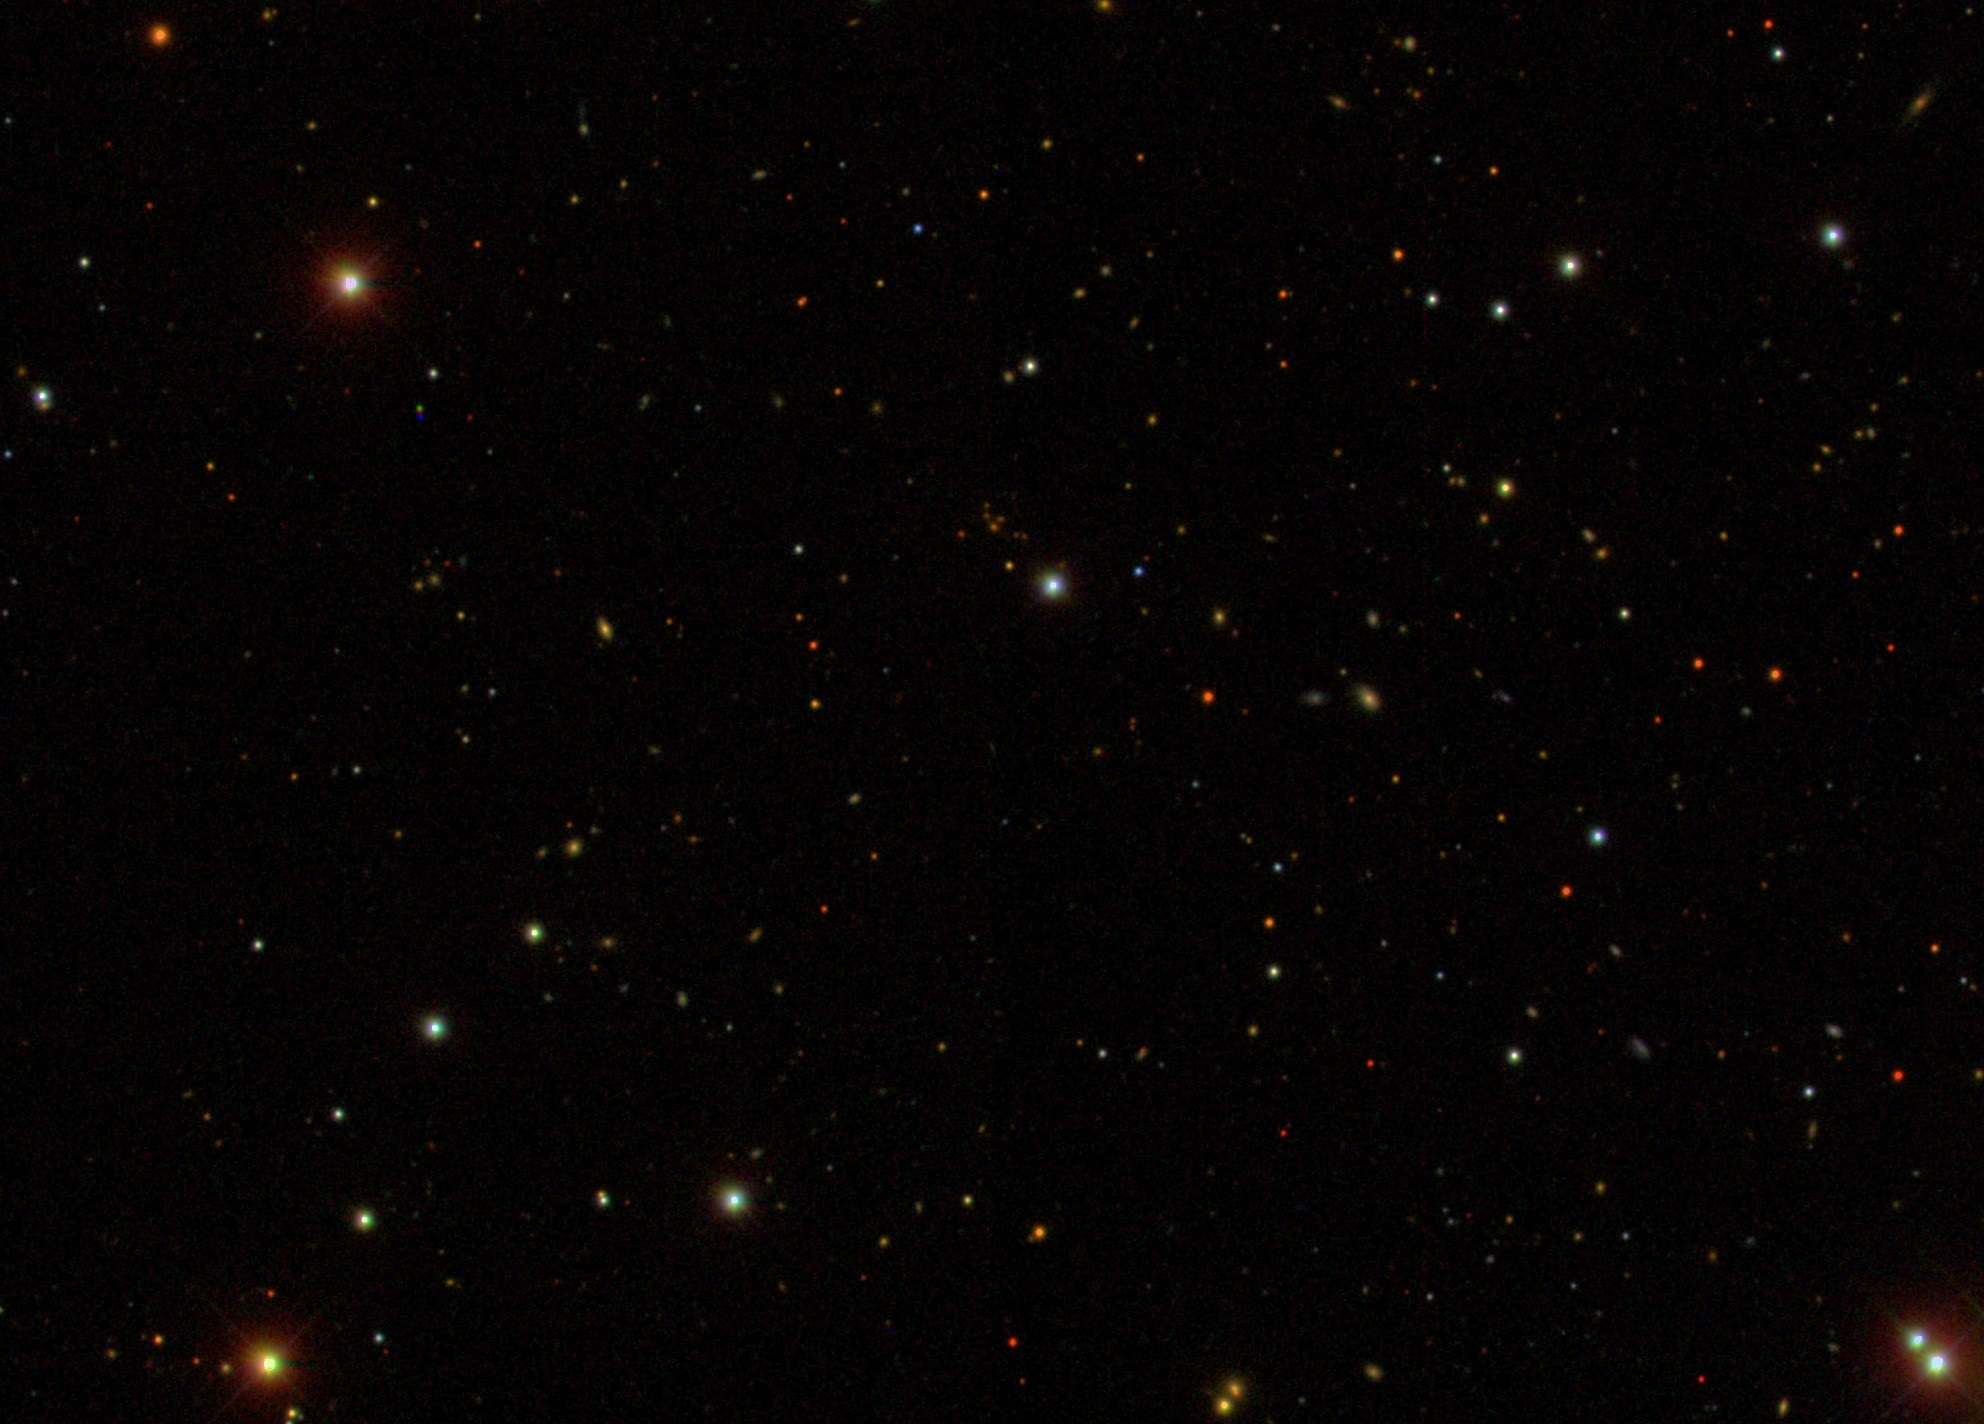 A sky image from the SDSS telescope: Run 752, Camcol 2, Field 289